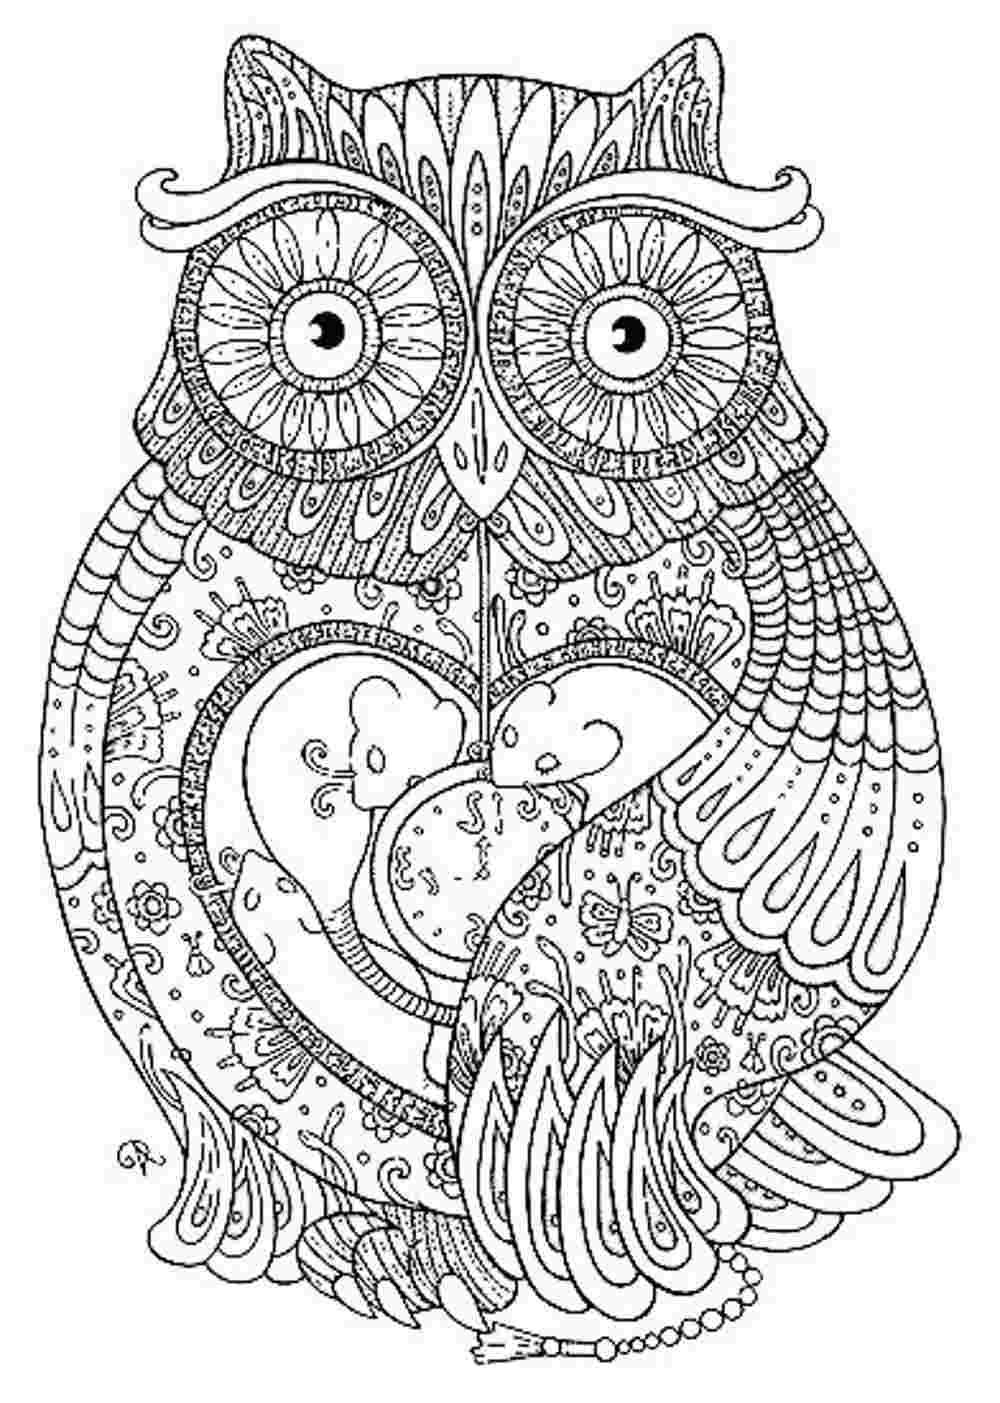 detailed animal coloring pages detailed animal coloring pages getcoloringpagescom detailed pages animal coloring